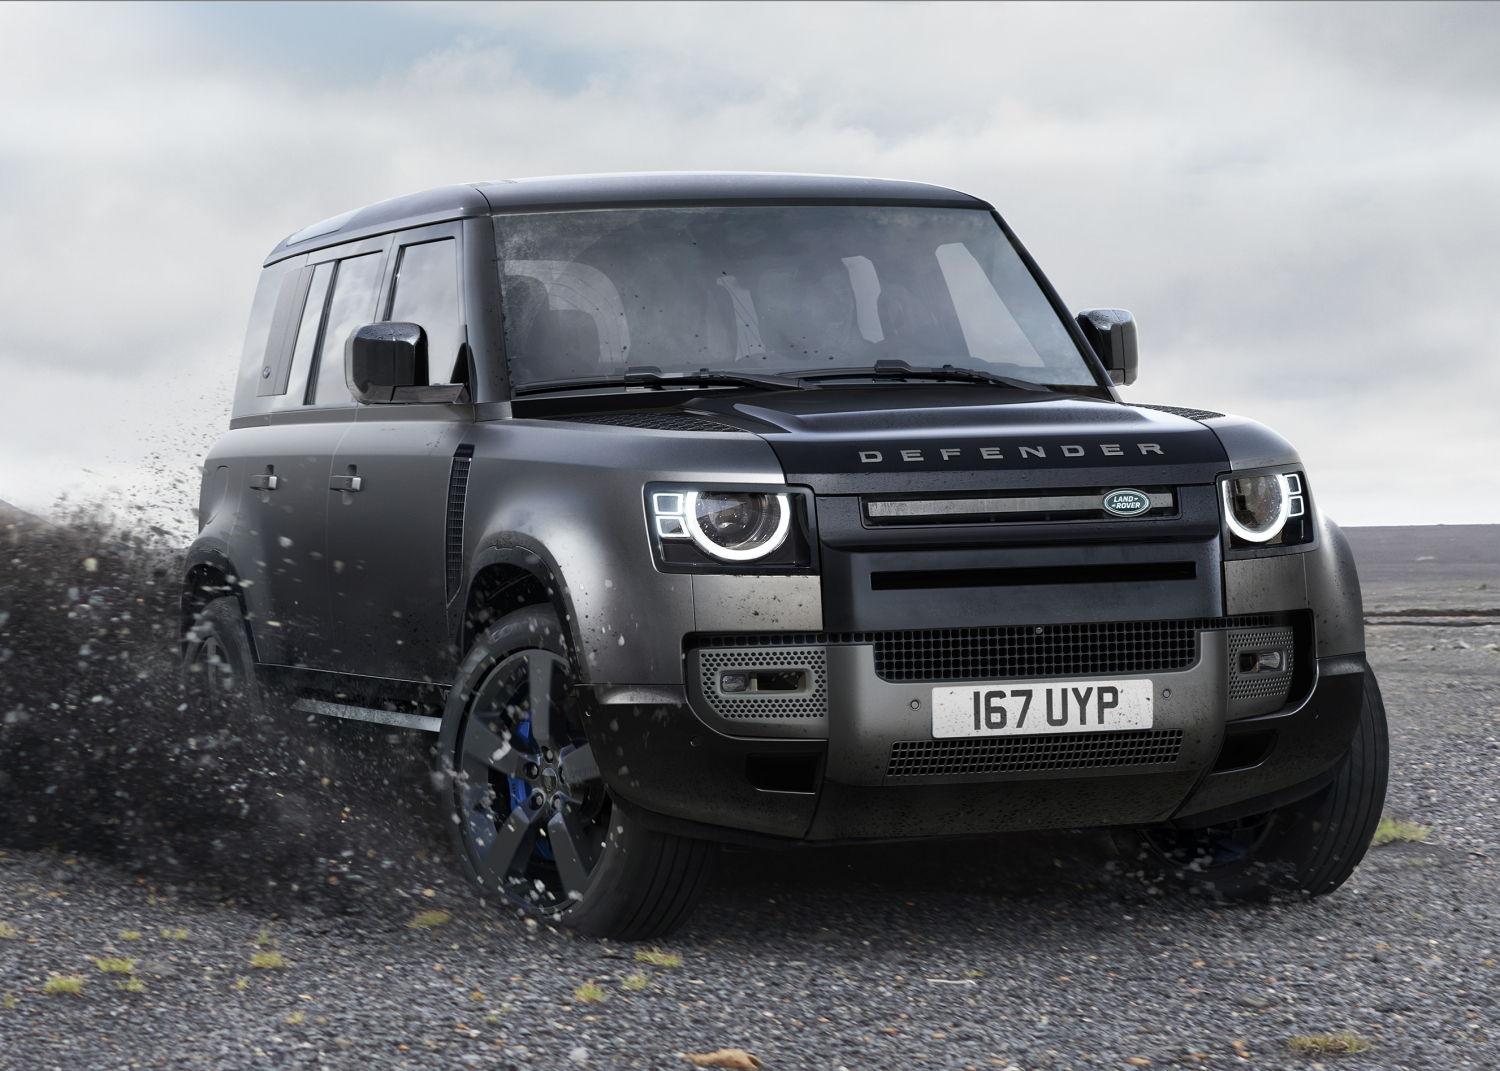 The Power of Choice: Potent New Defender V8 and Exclusive Special Editions Join the Range - Image 2